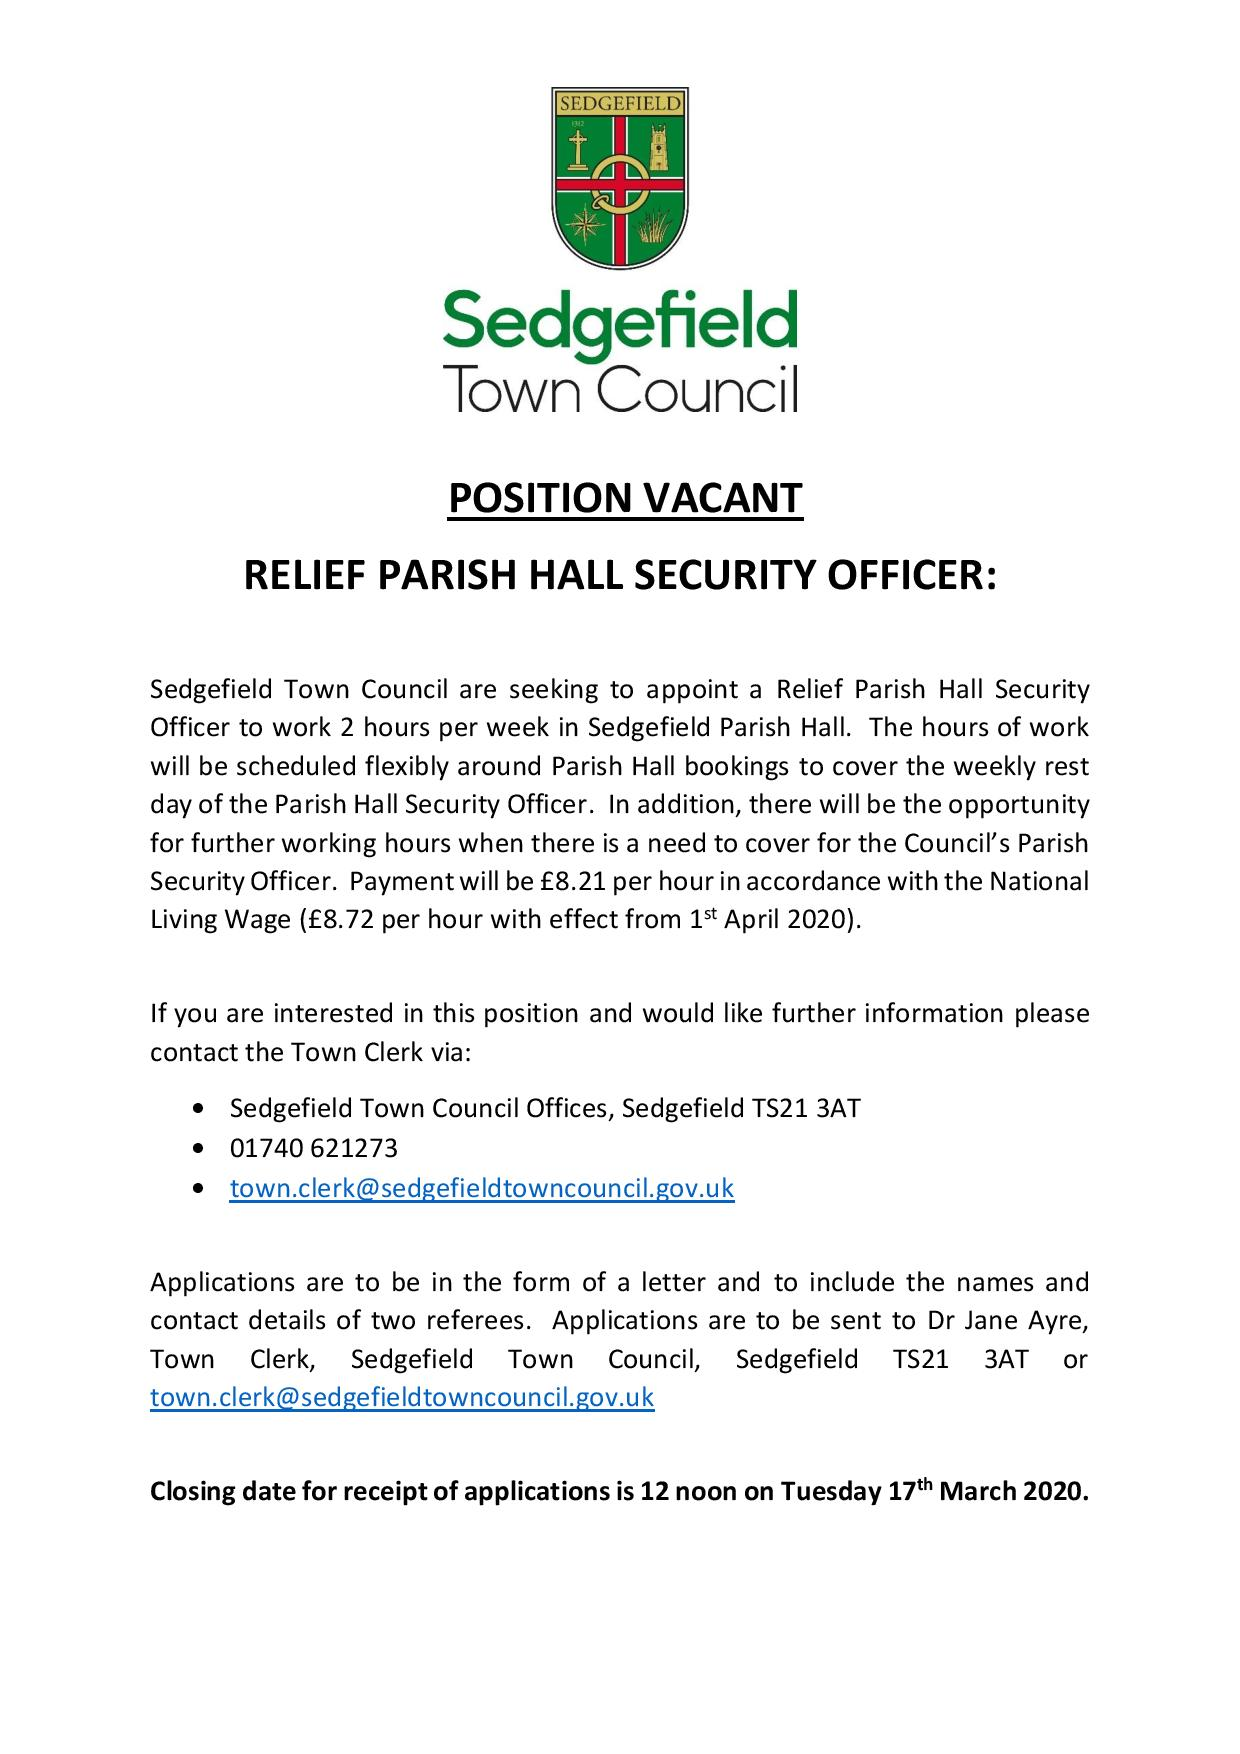 Parish Hall Security Officer Relief advert 17 02 2020-page-001